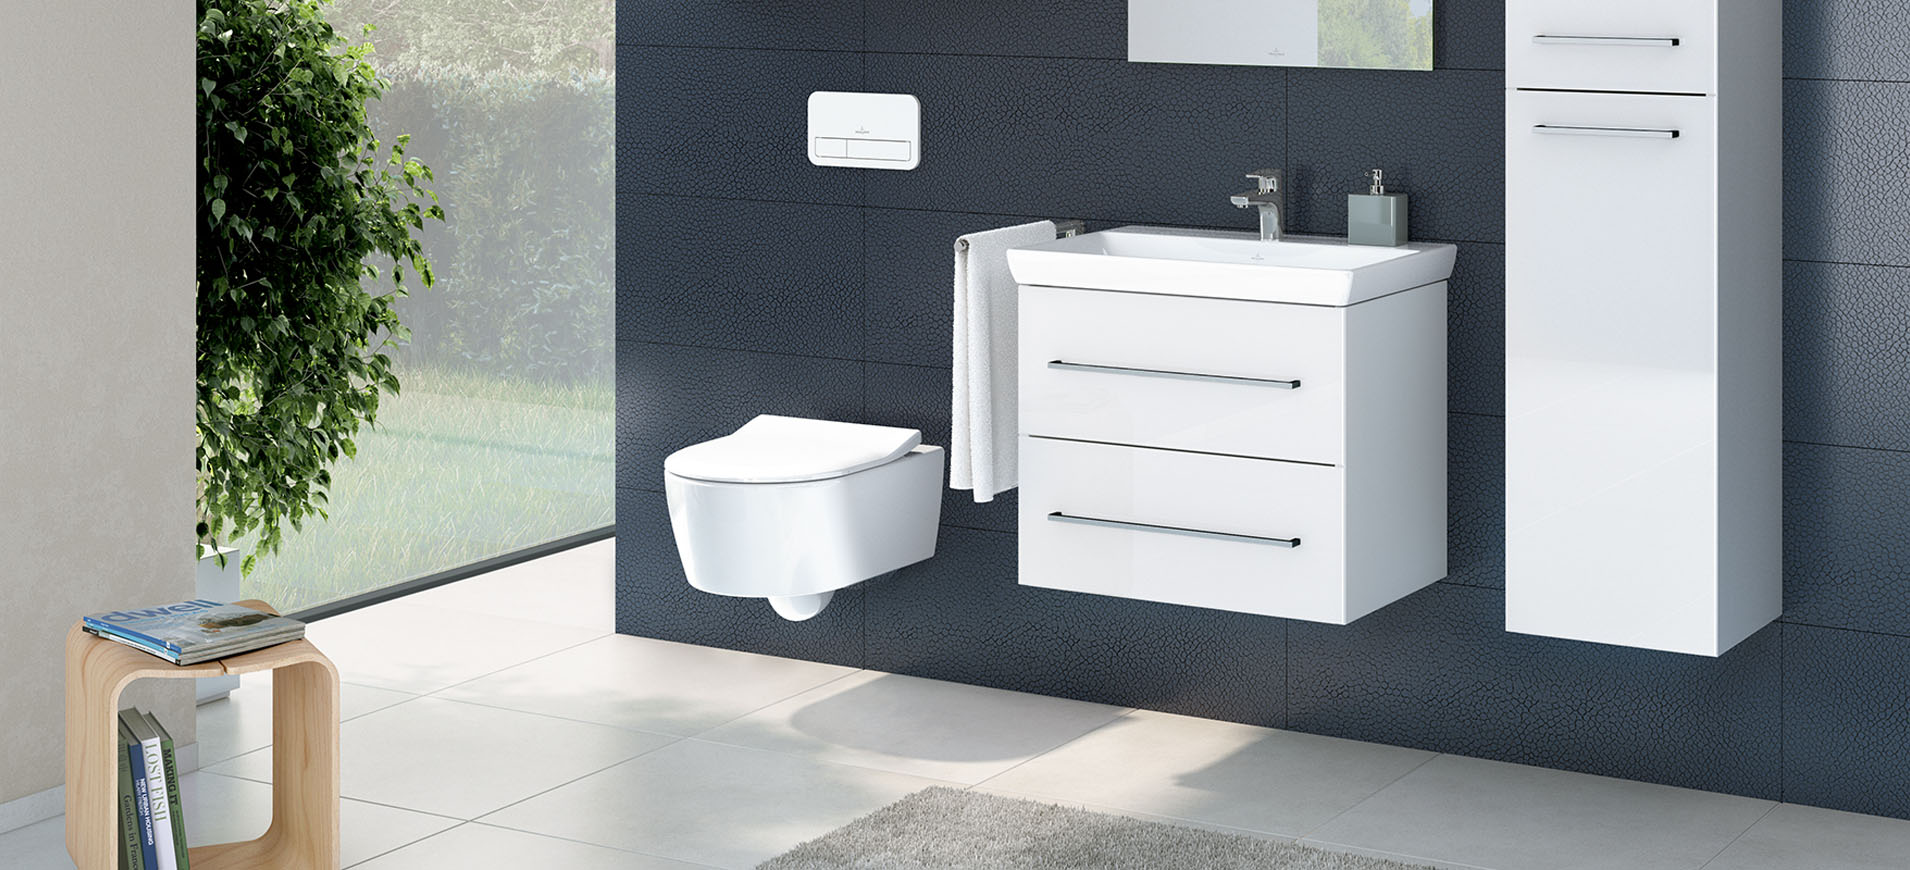 Villeroy & Boch Viconnect